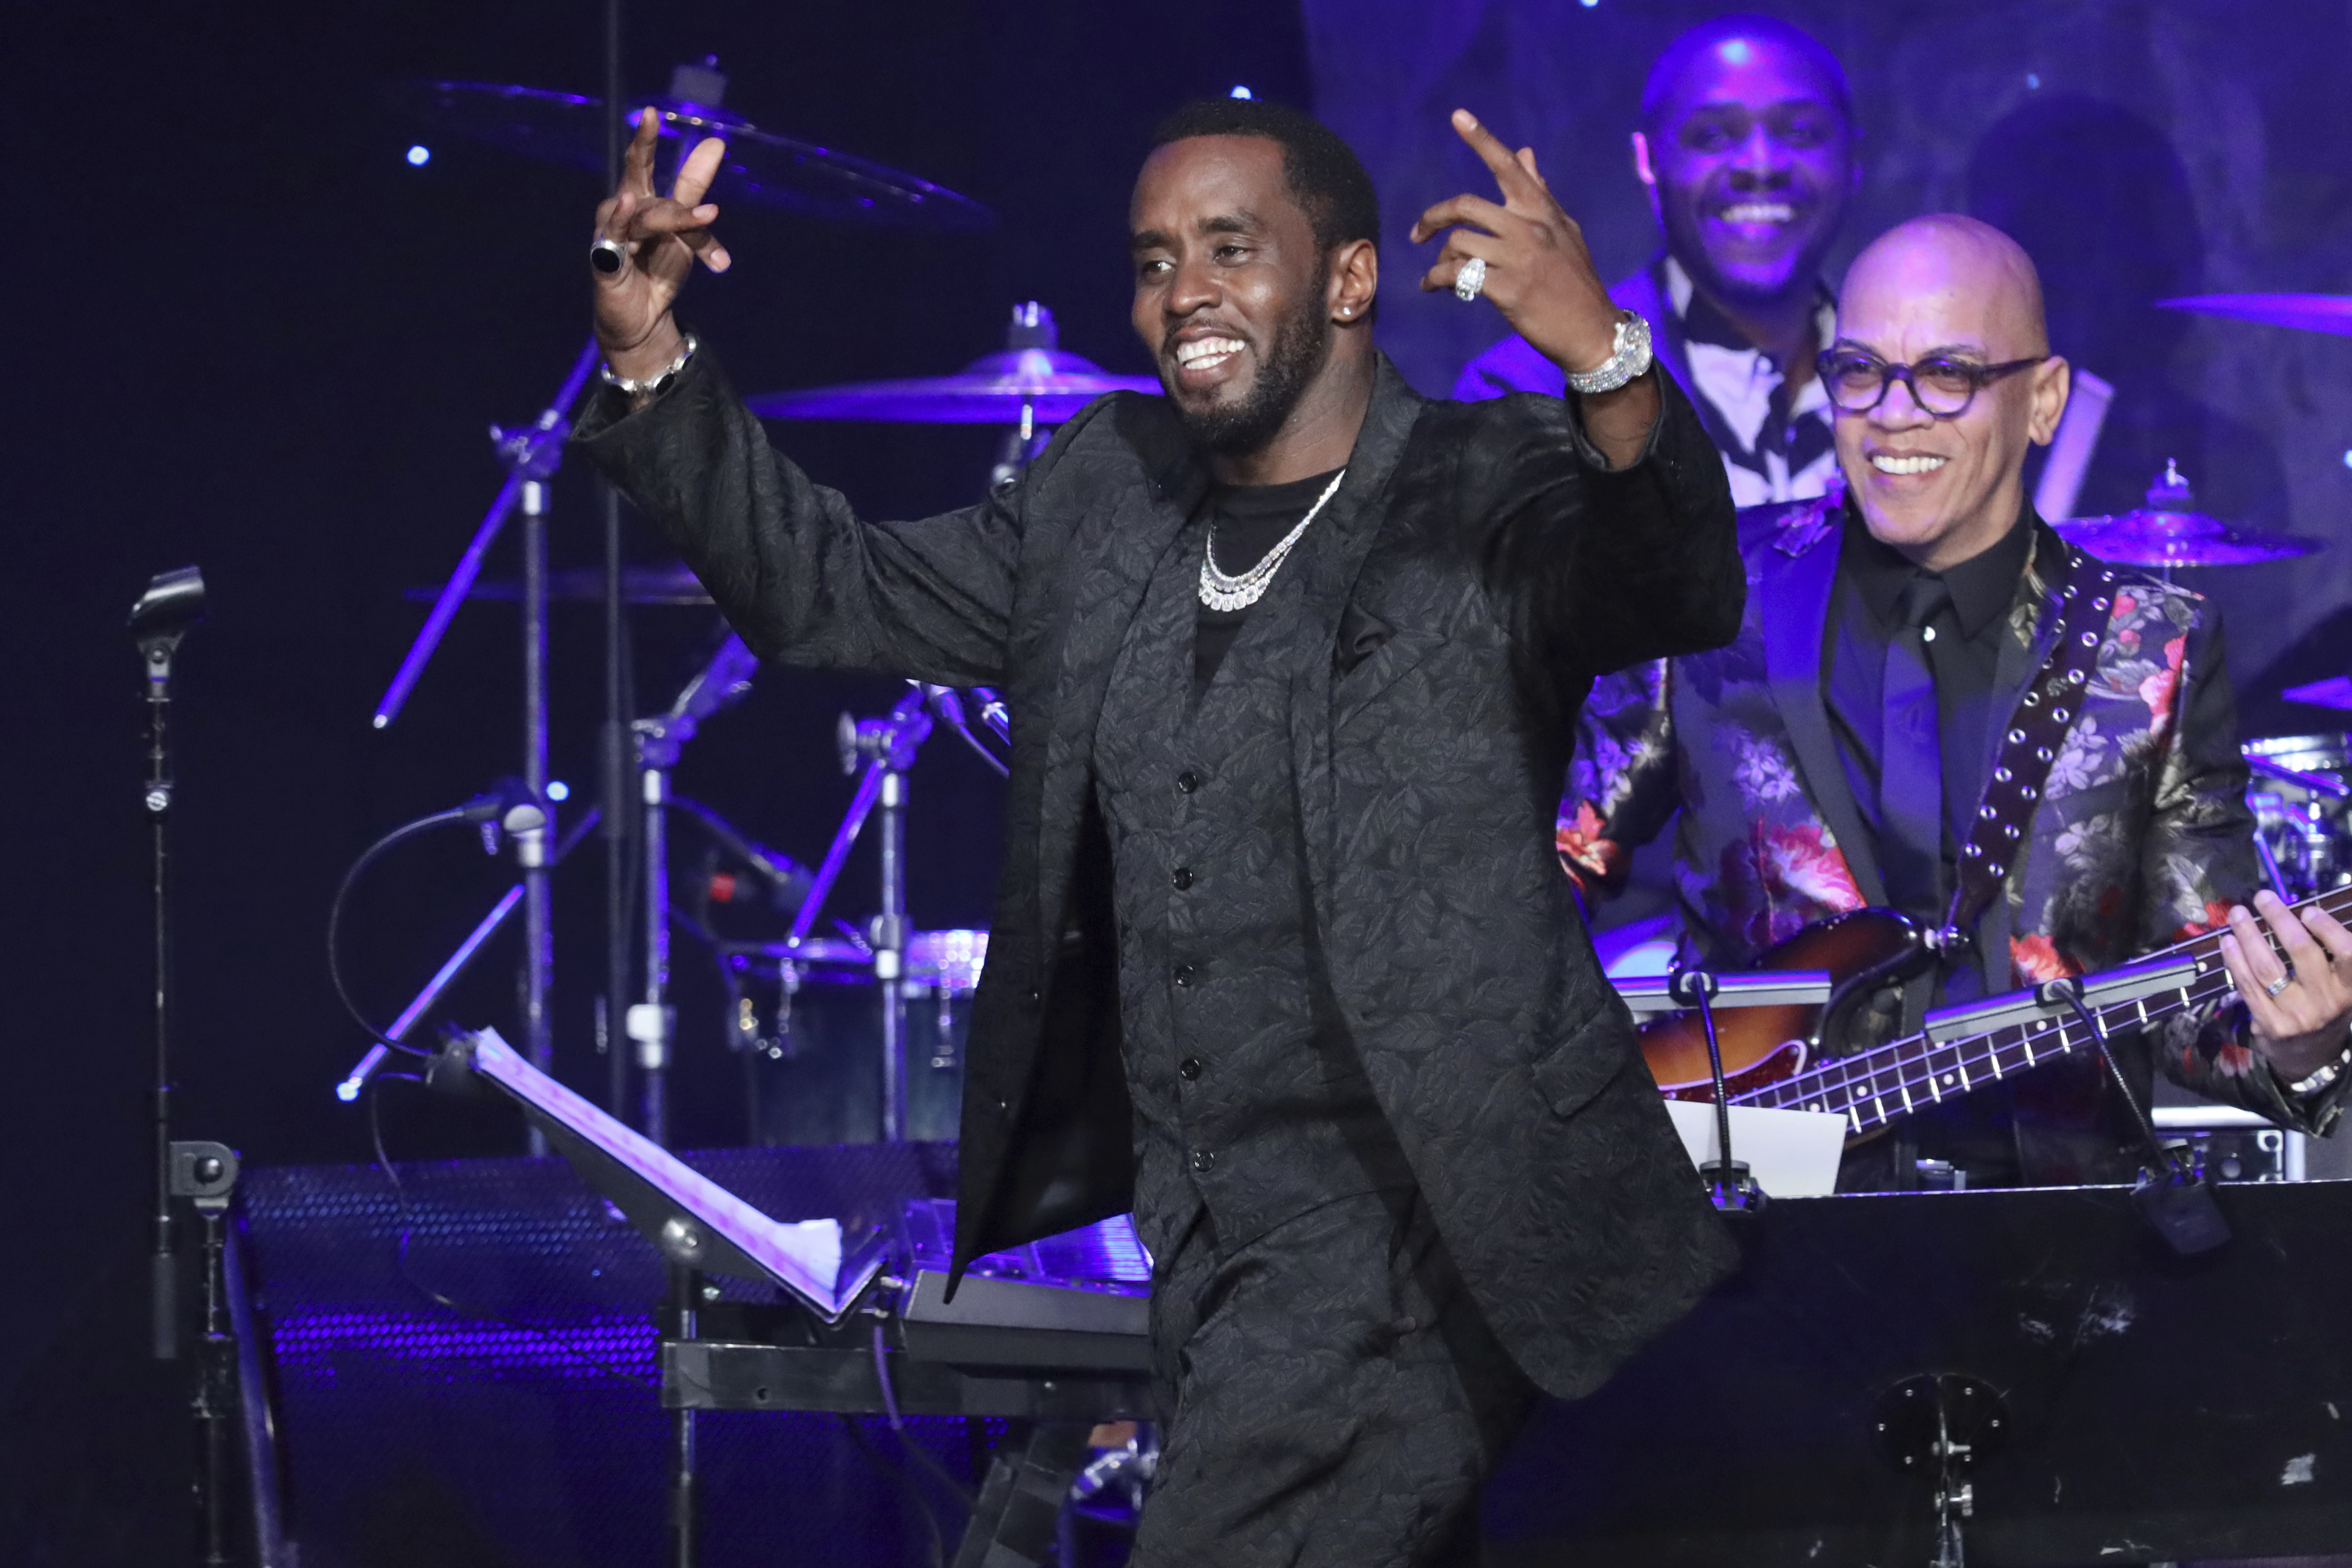 'You Just Want an Even Playing Field.' Sean 'Diddy' Combs Calls Out Grammys for Lack of R&B, Rap Representation